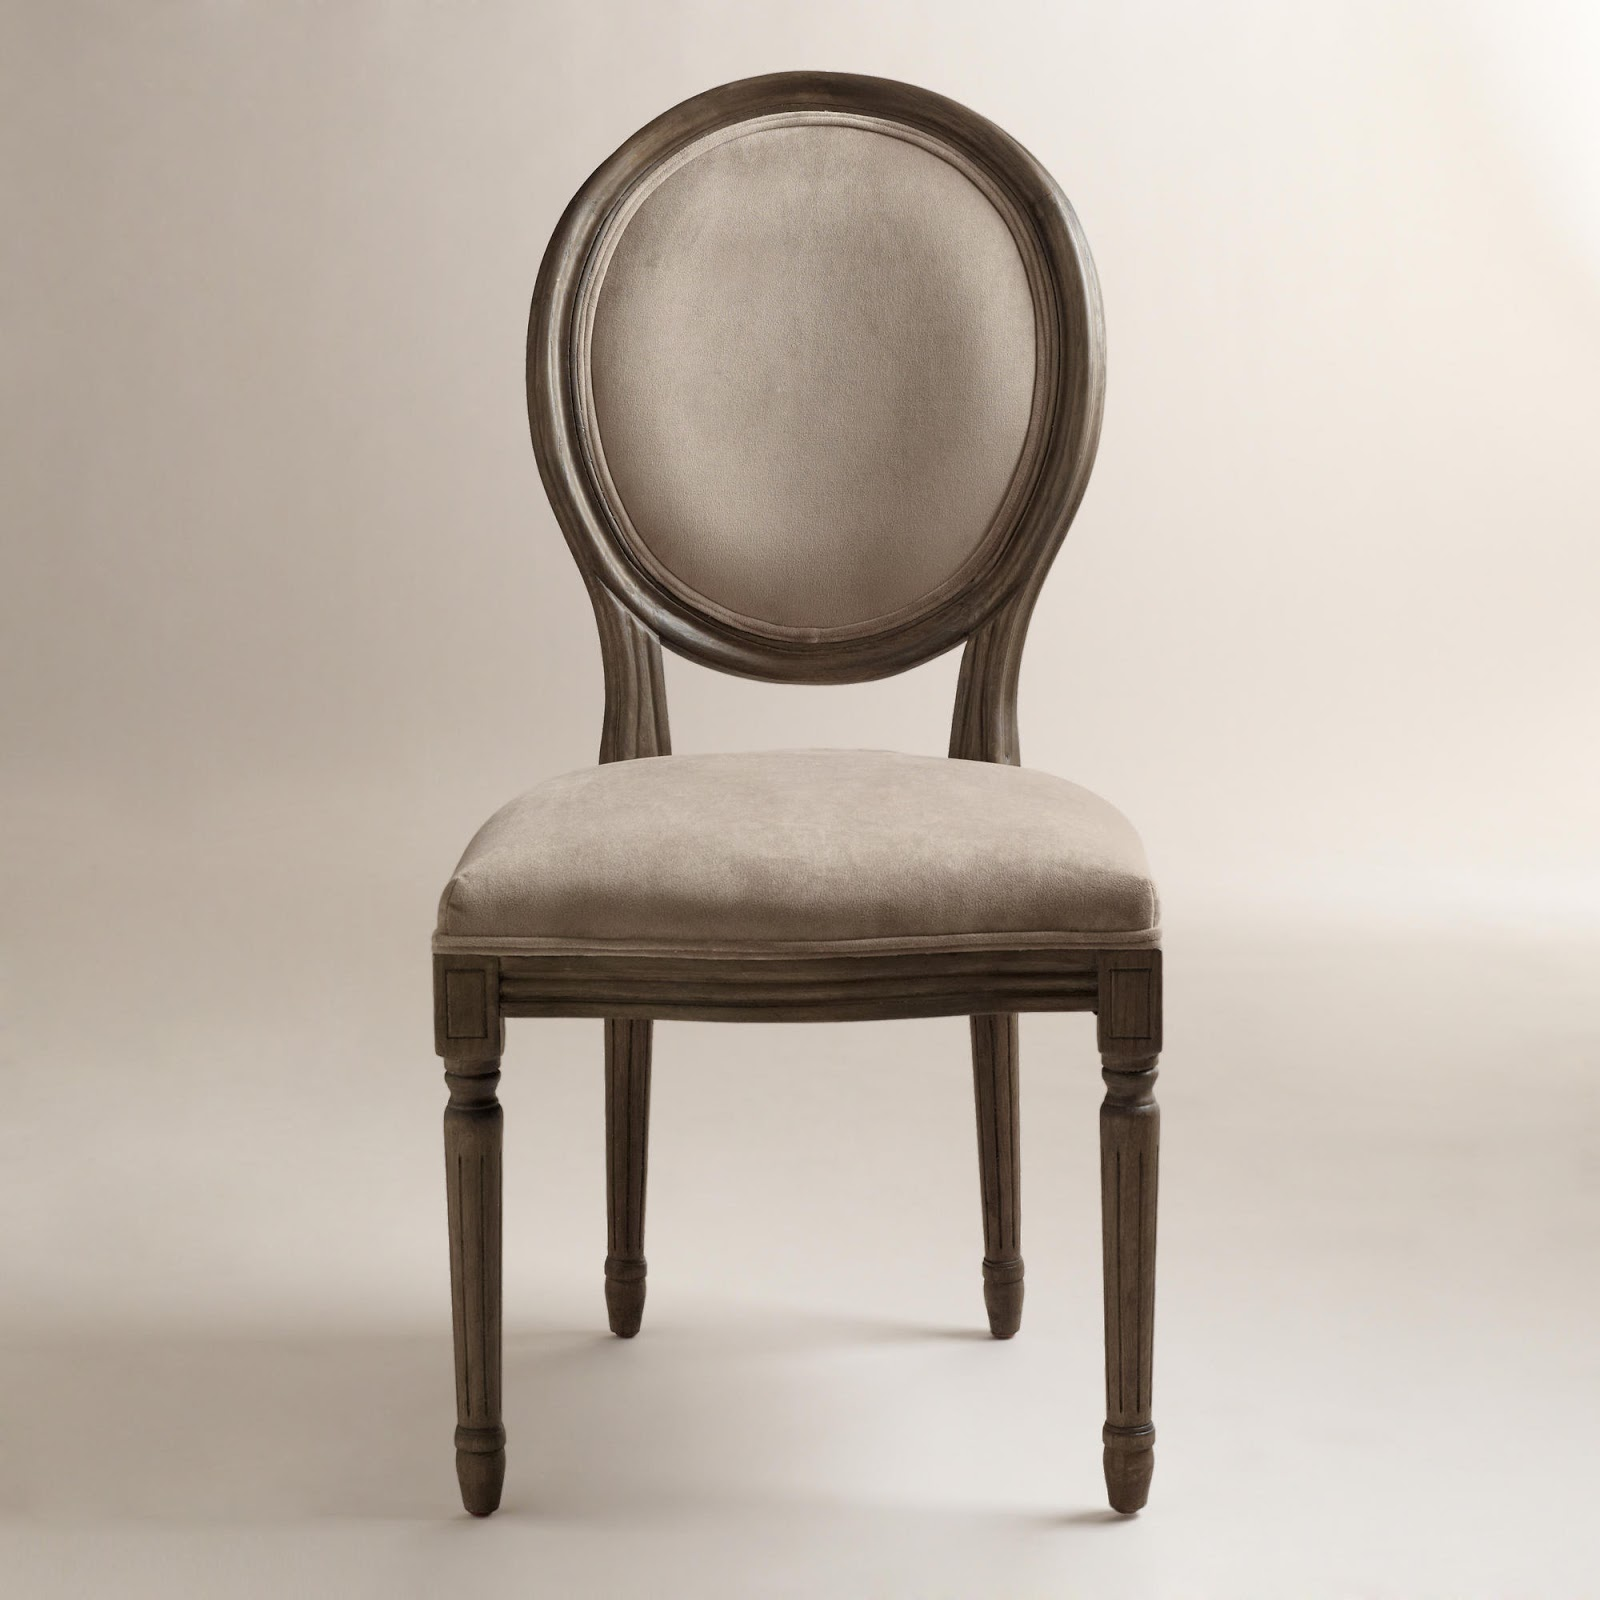 Restoration Hardware Vintage French Round Upholstered Side Chair Decor Look